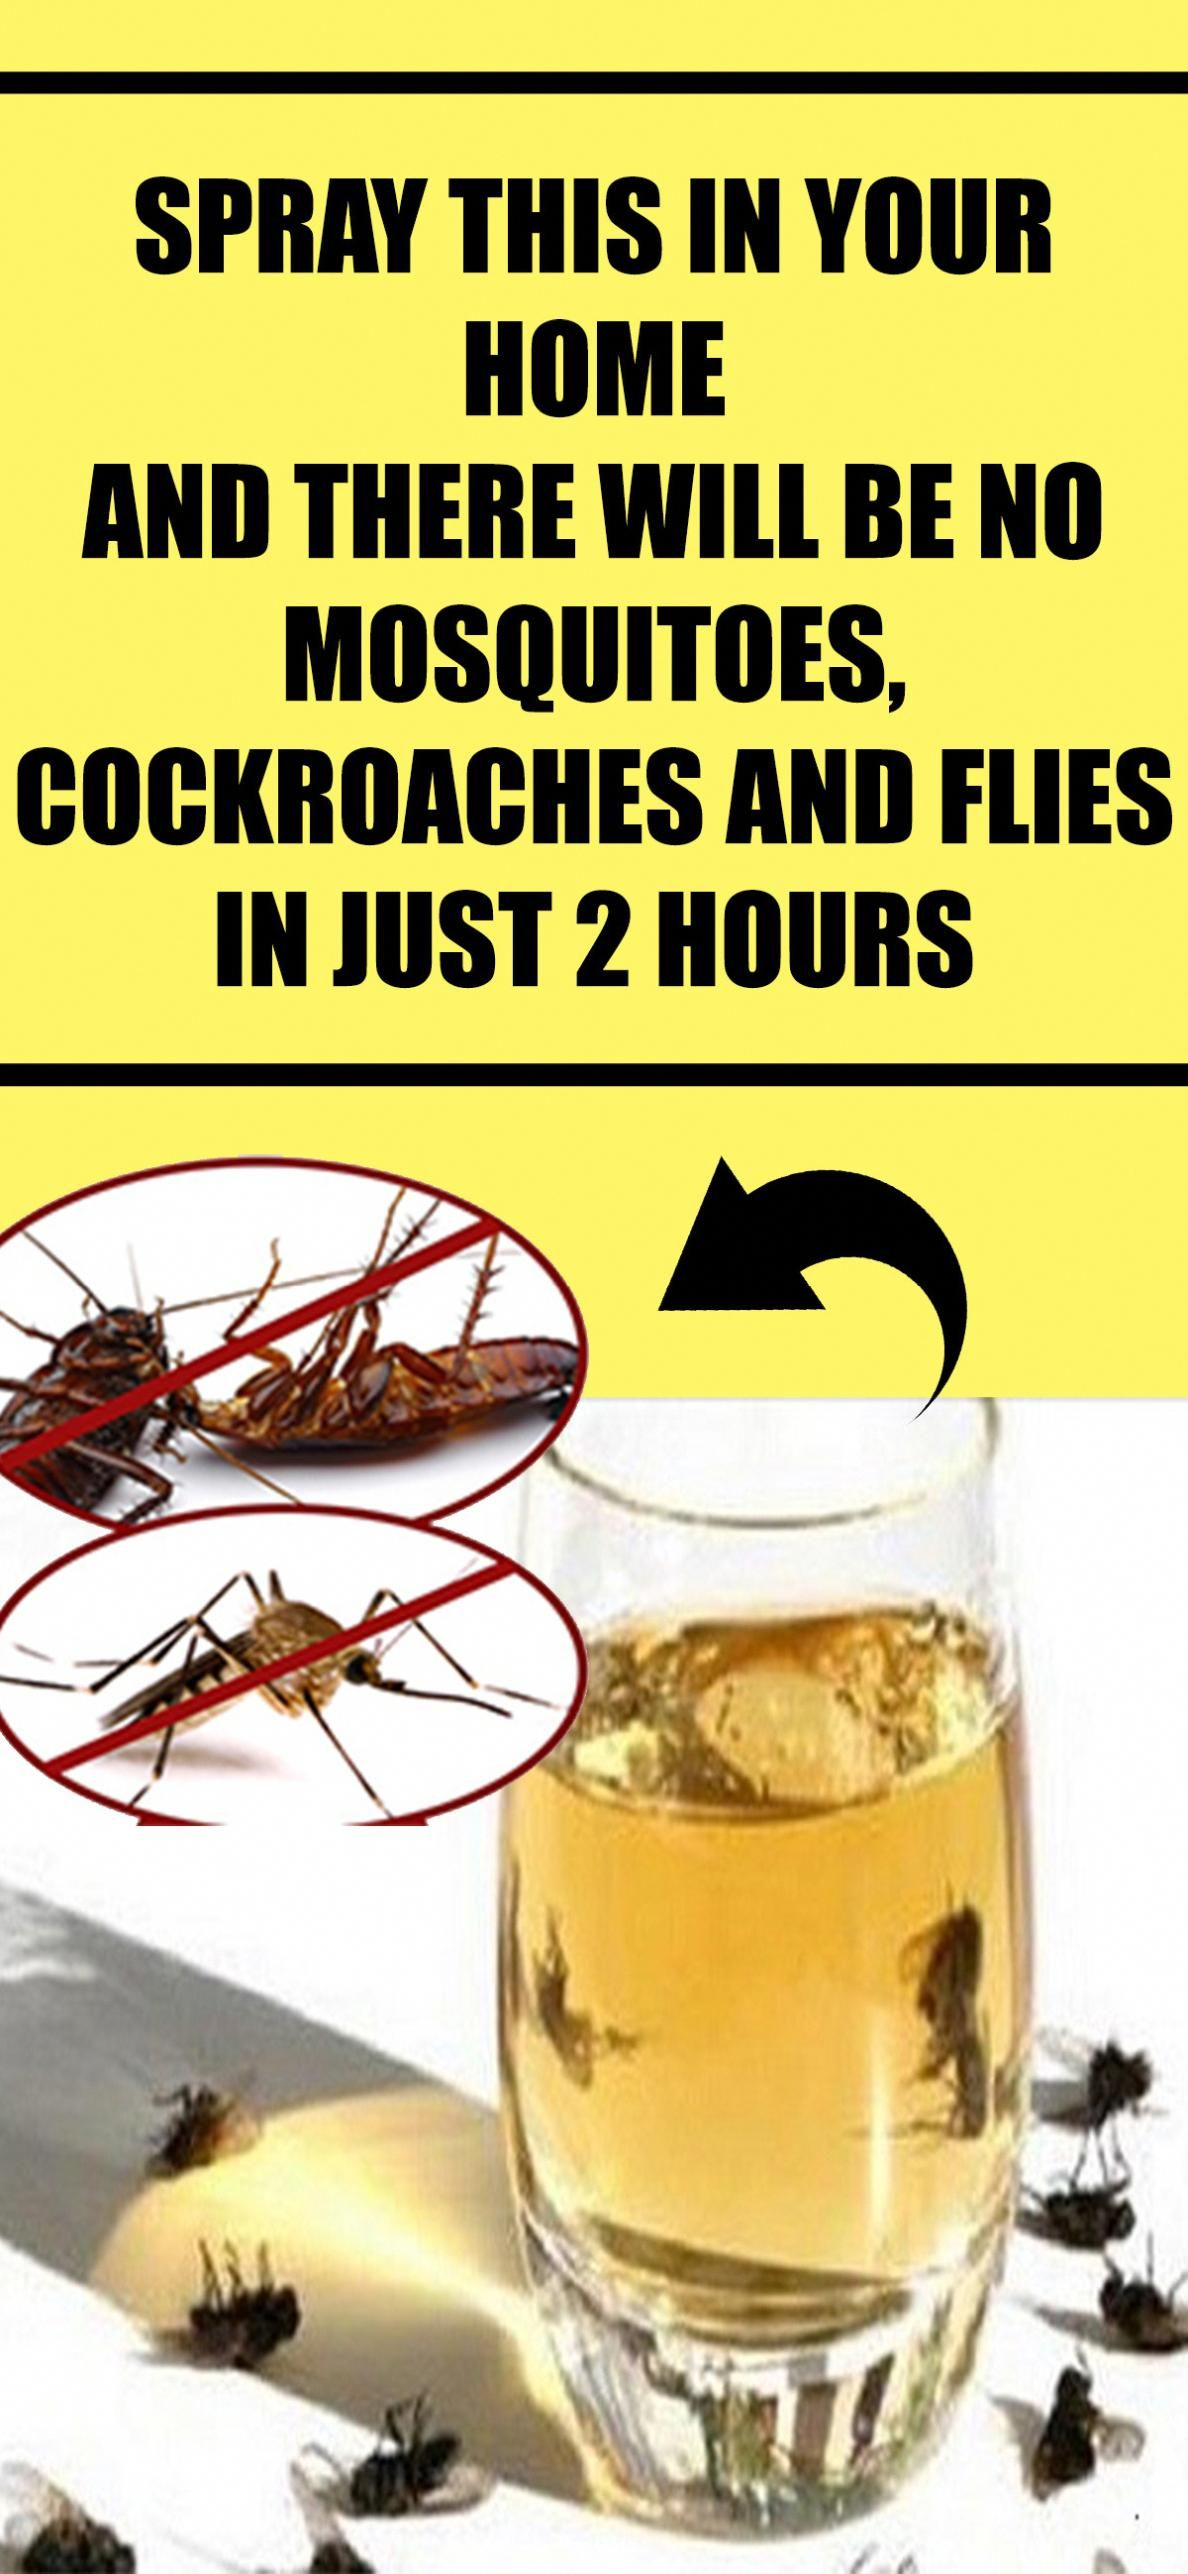 Spray This In Your Home And There Will Be No Mosquitoes